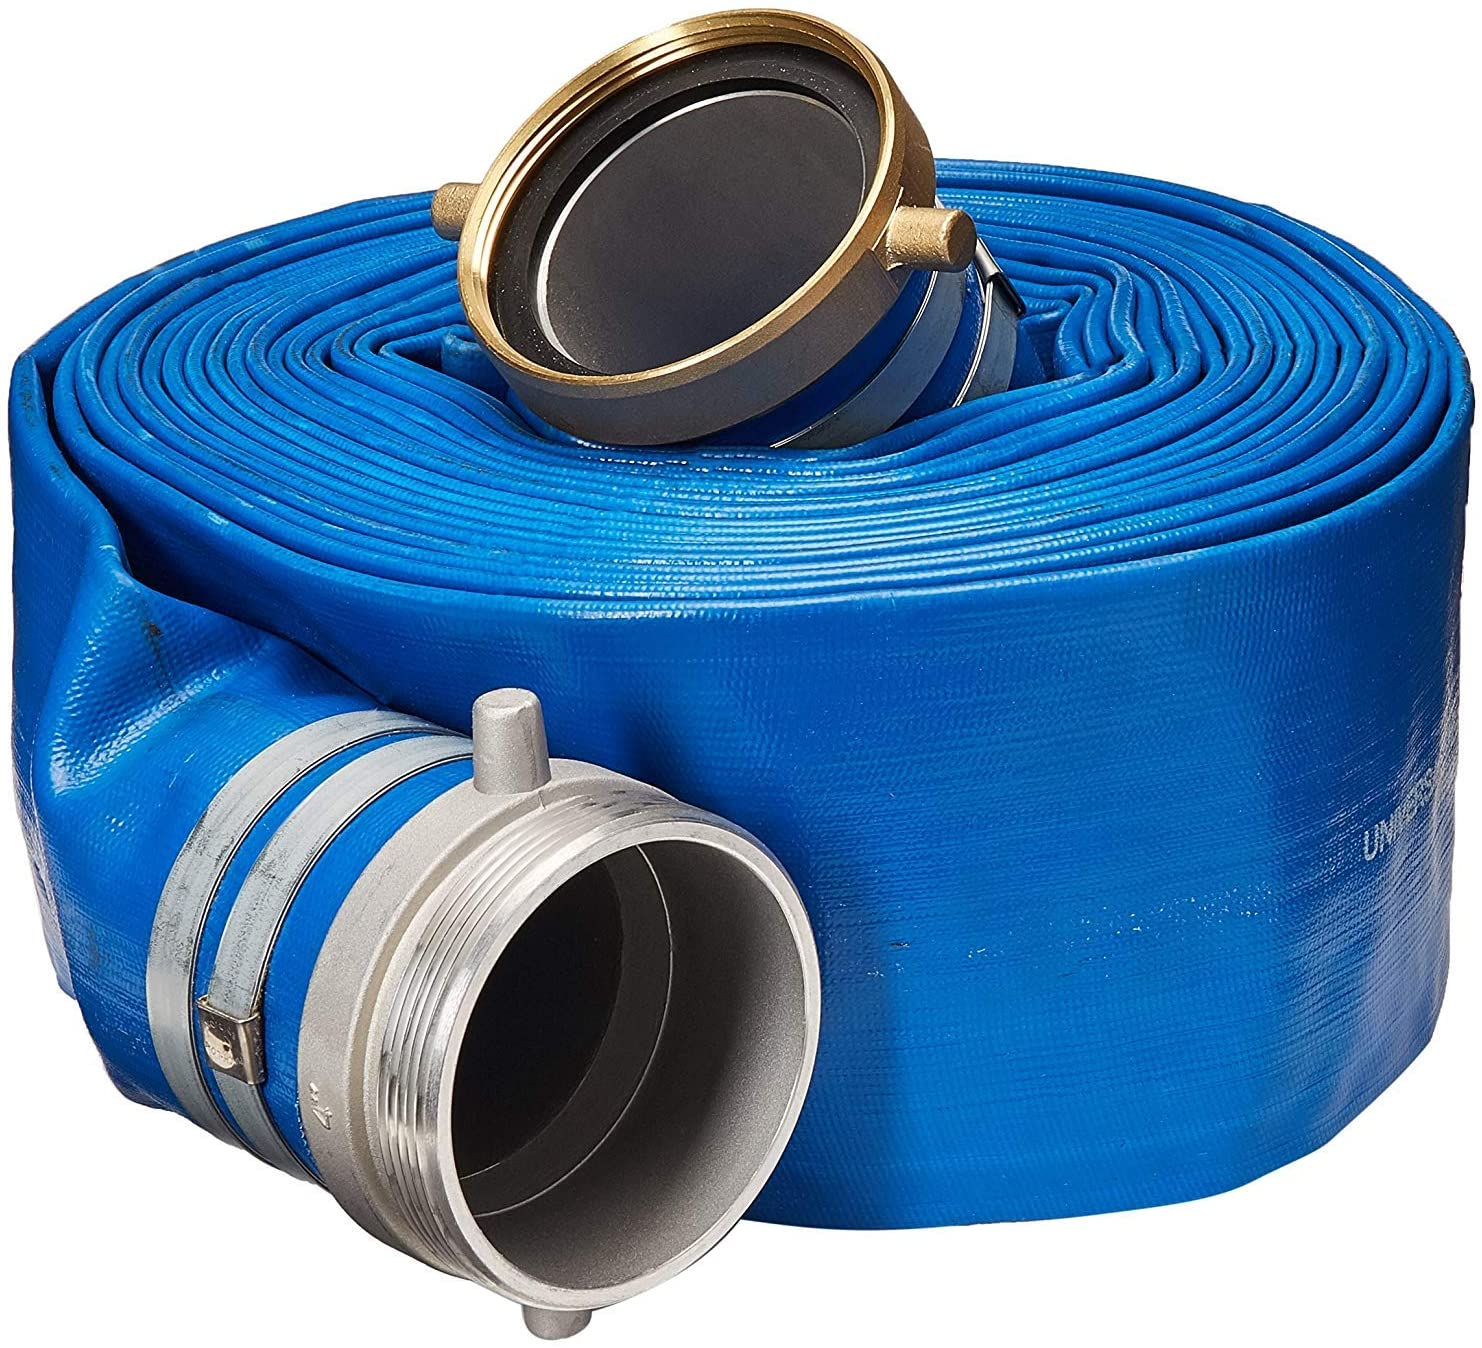 Stanios 4502-4000-PL 4 ID Blue Standard-Duty PVC Lay-Flat Discharge Hose with Pin Lug Fittings (25 Feet)